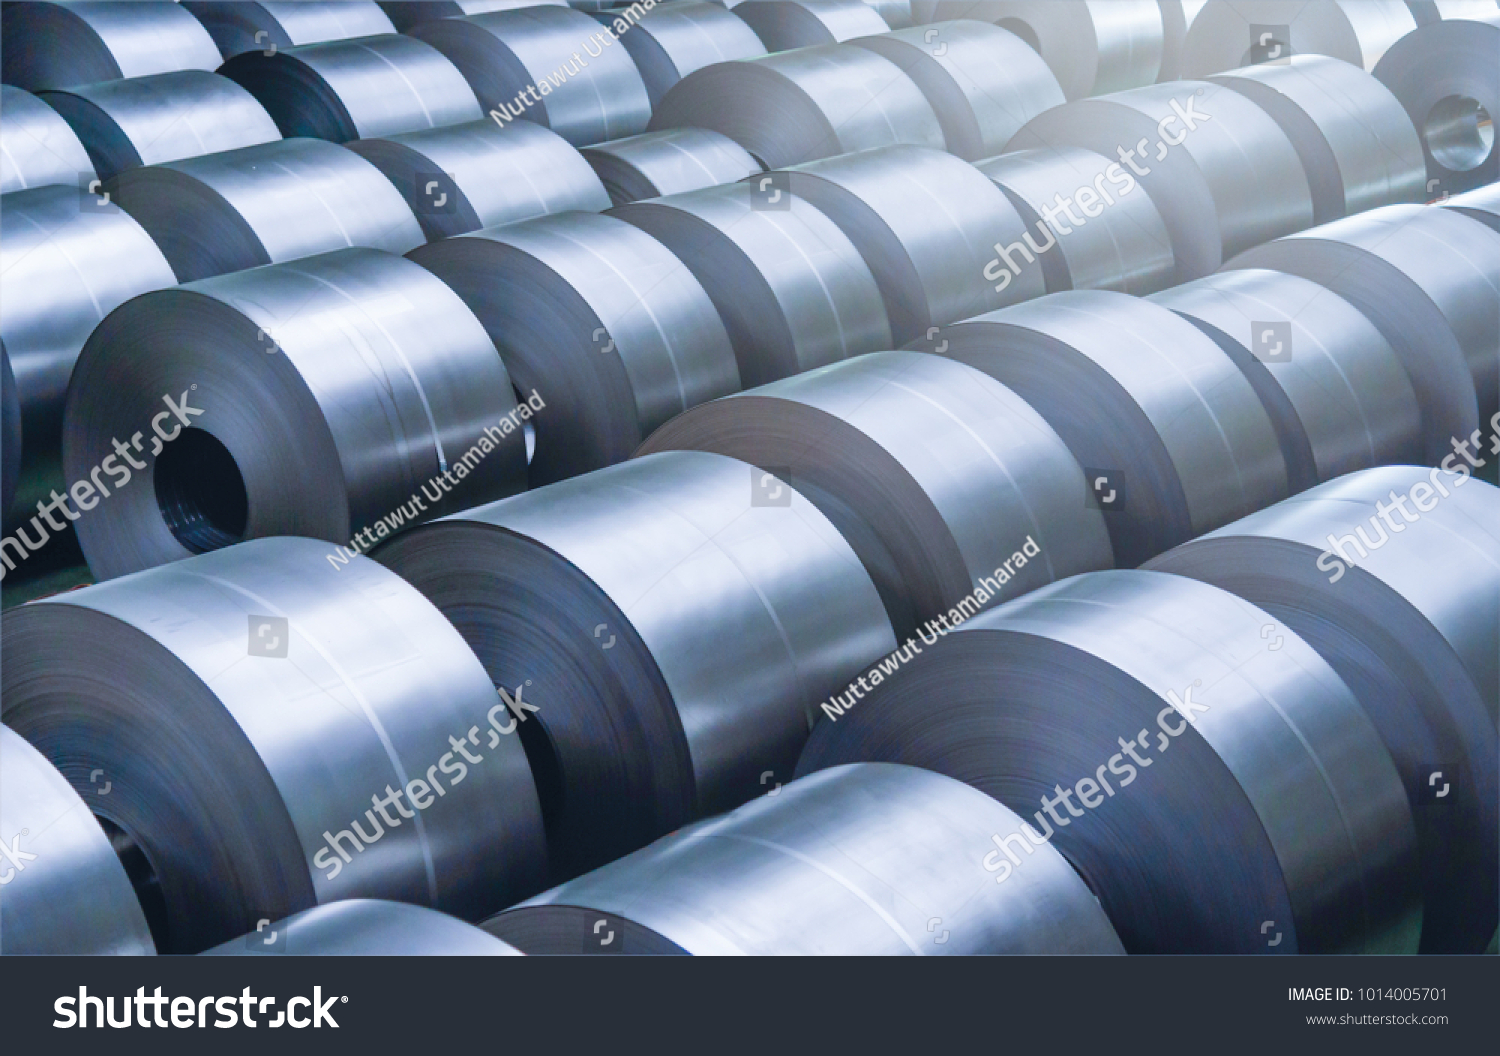 Cold rolled steel coil at storage area in steel industry plant.